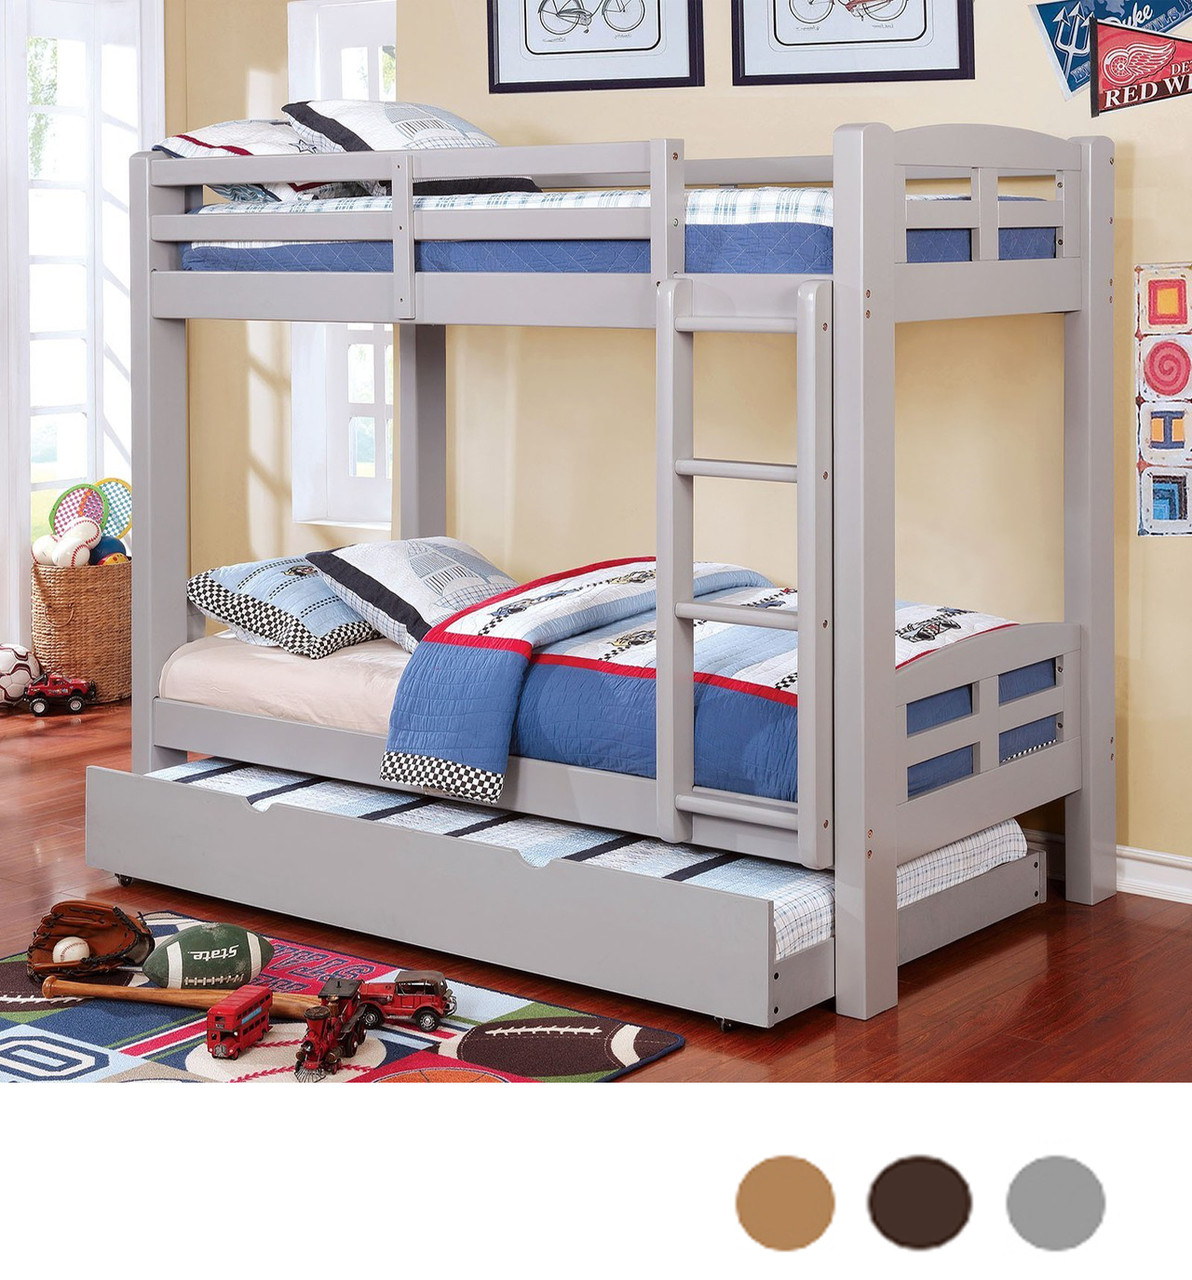 Acey Twin Bunk Bed With Trundle In Gray Espresso